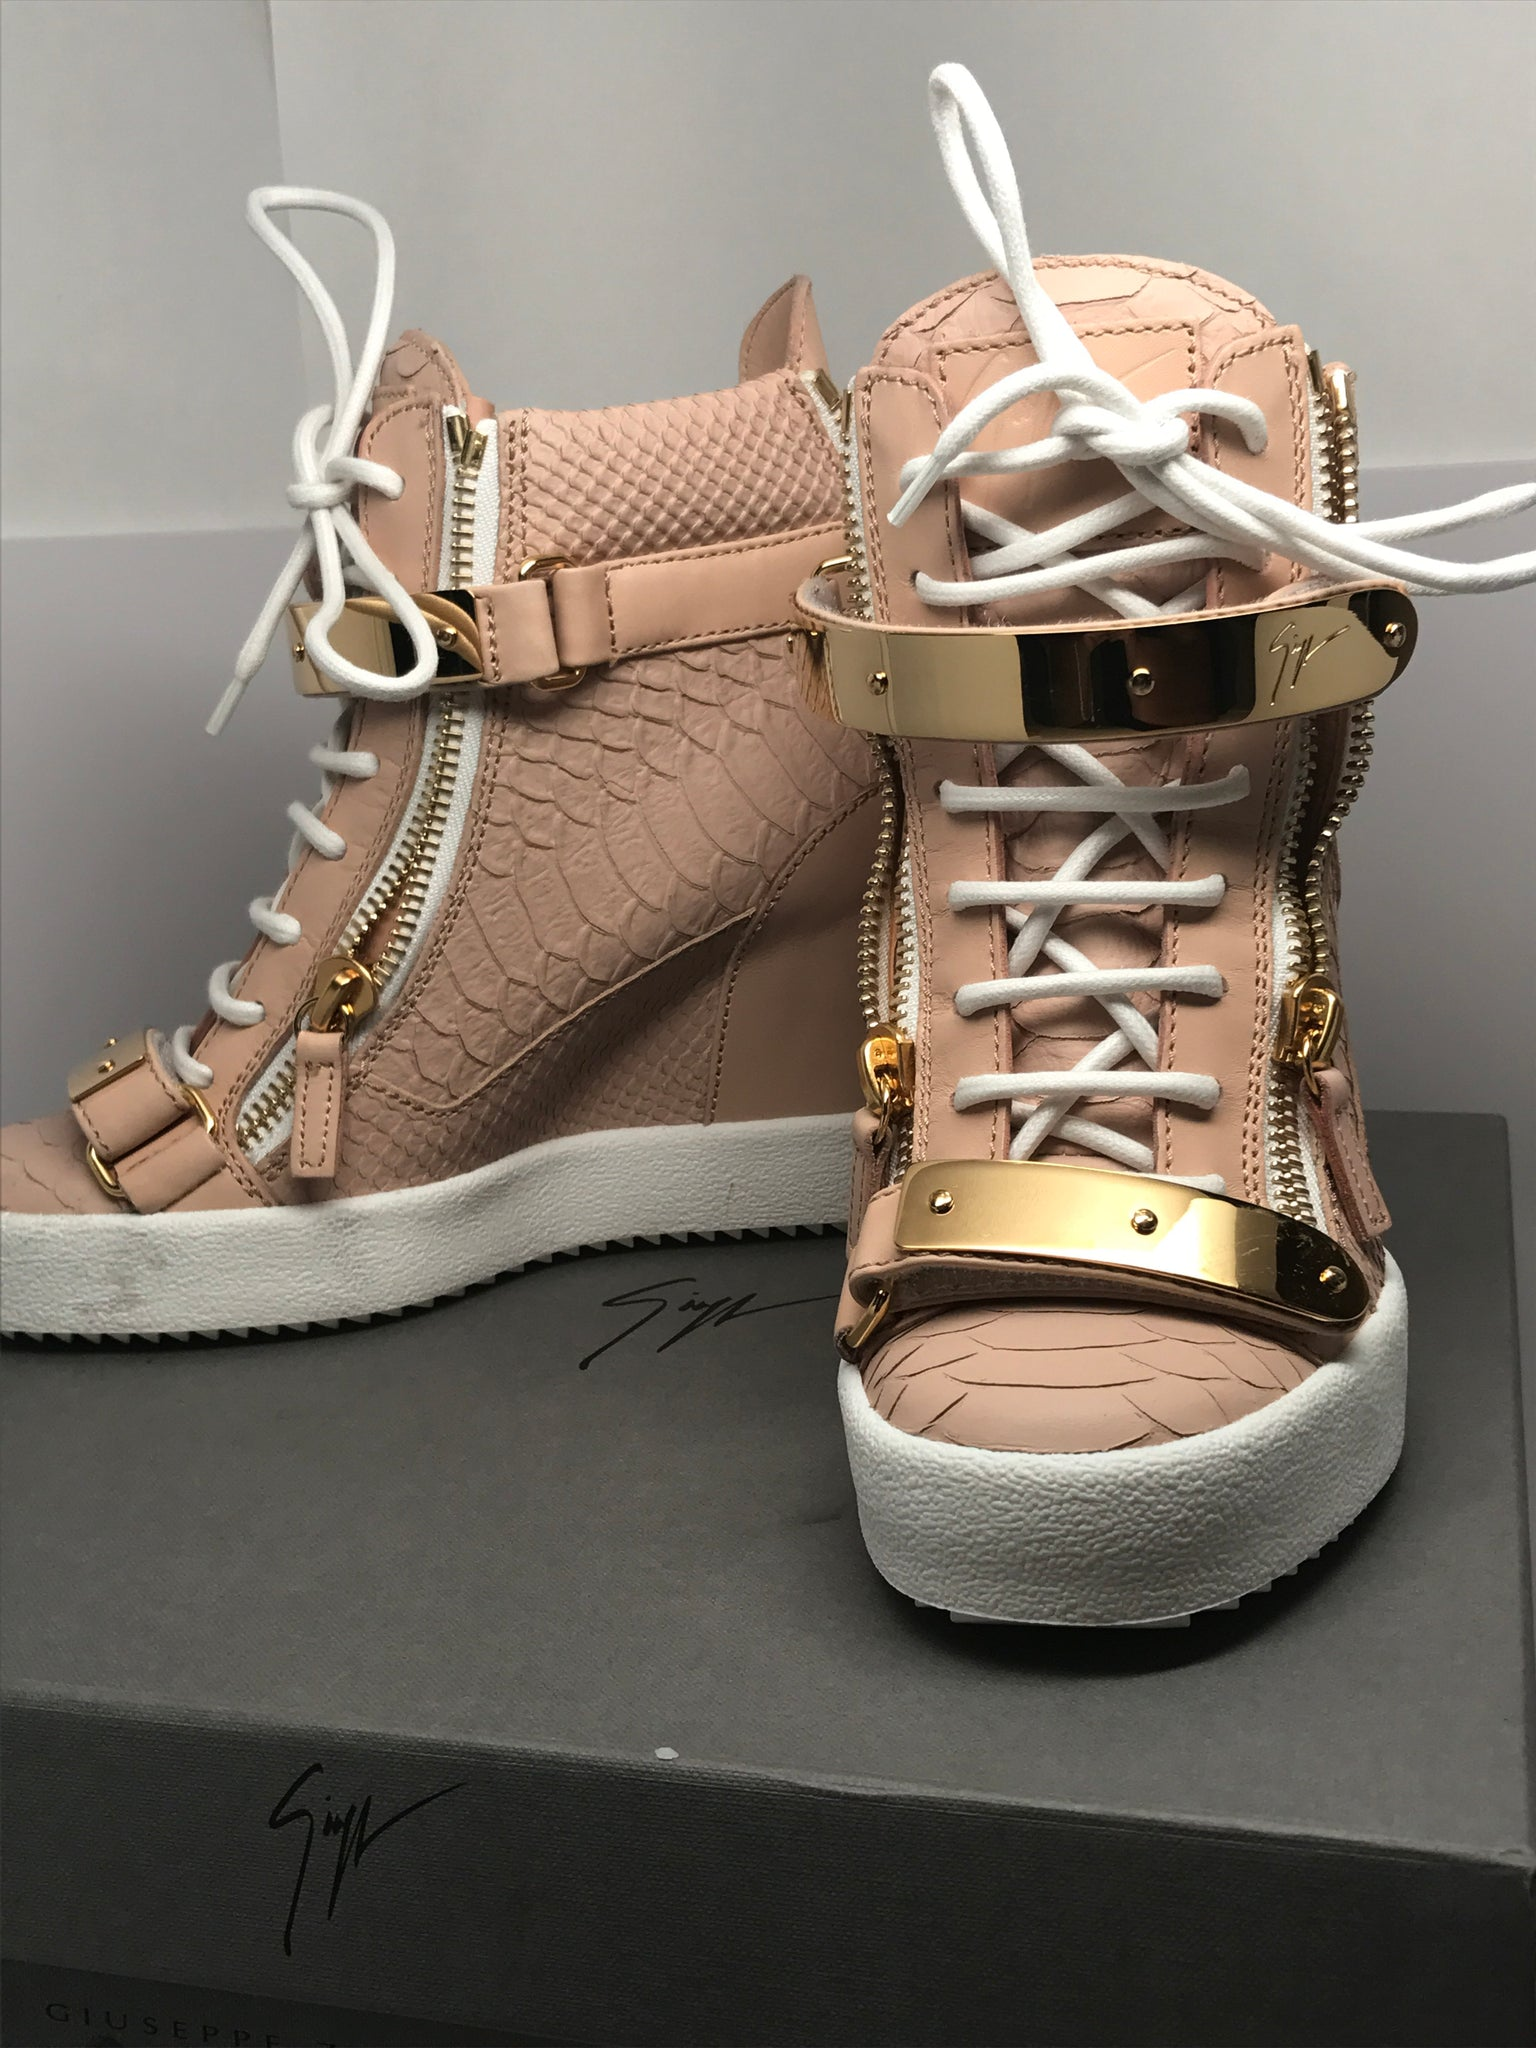 GIUSEPPE ZANOTTI 'JENNIFER' EMBOSSED CROCODILE LEATHER WEDGE SNEAKER - SIZE 37